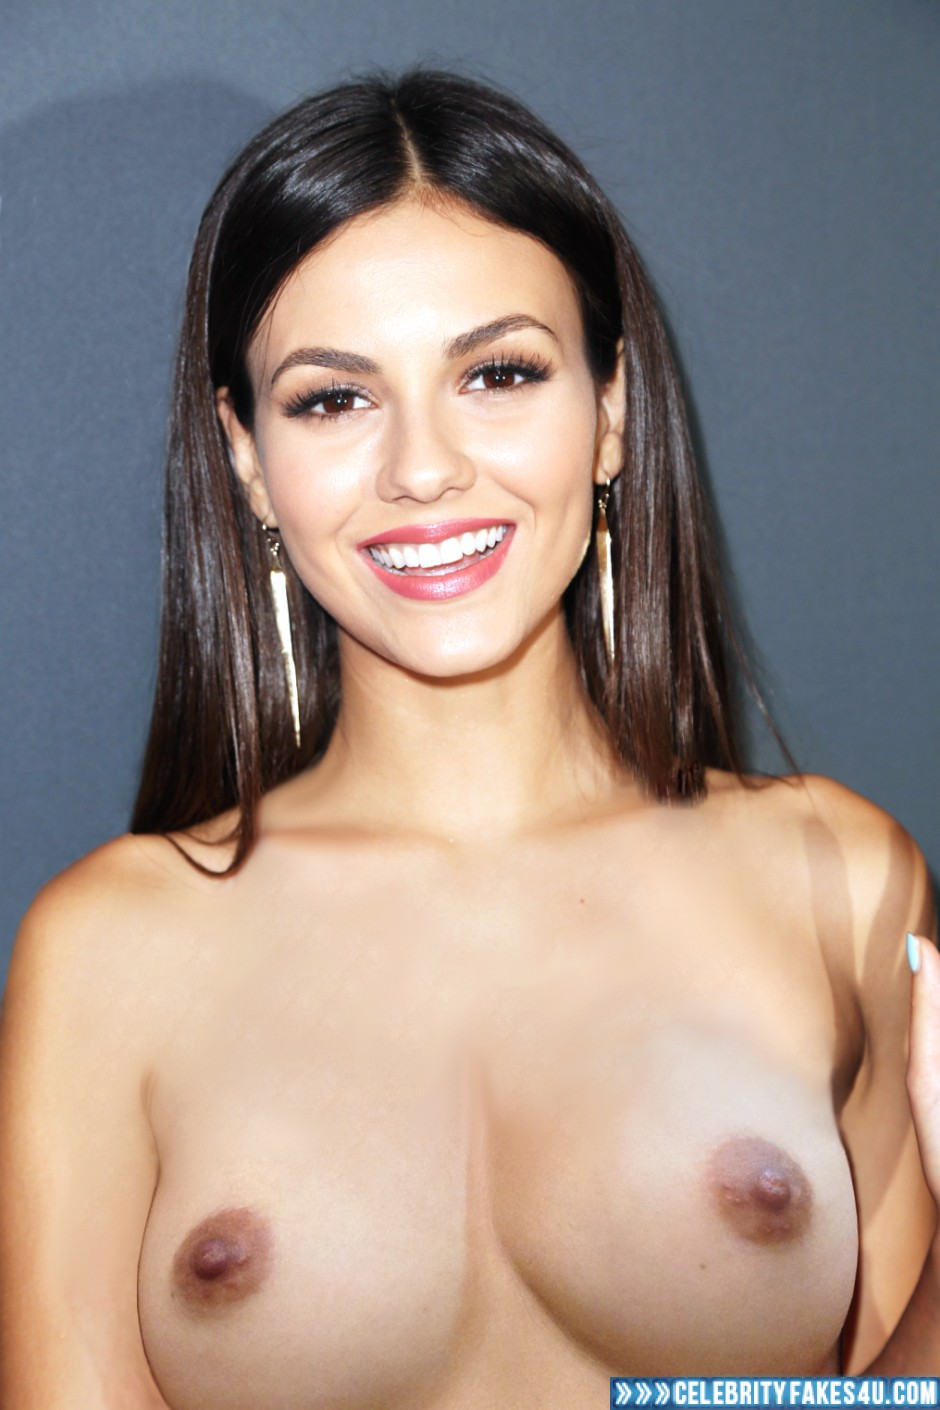 Victoria Justice Fake, Brunette Hair, Nude, Tits, Porn